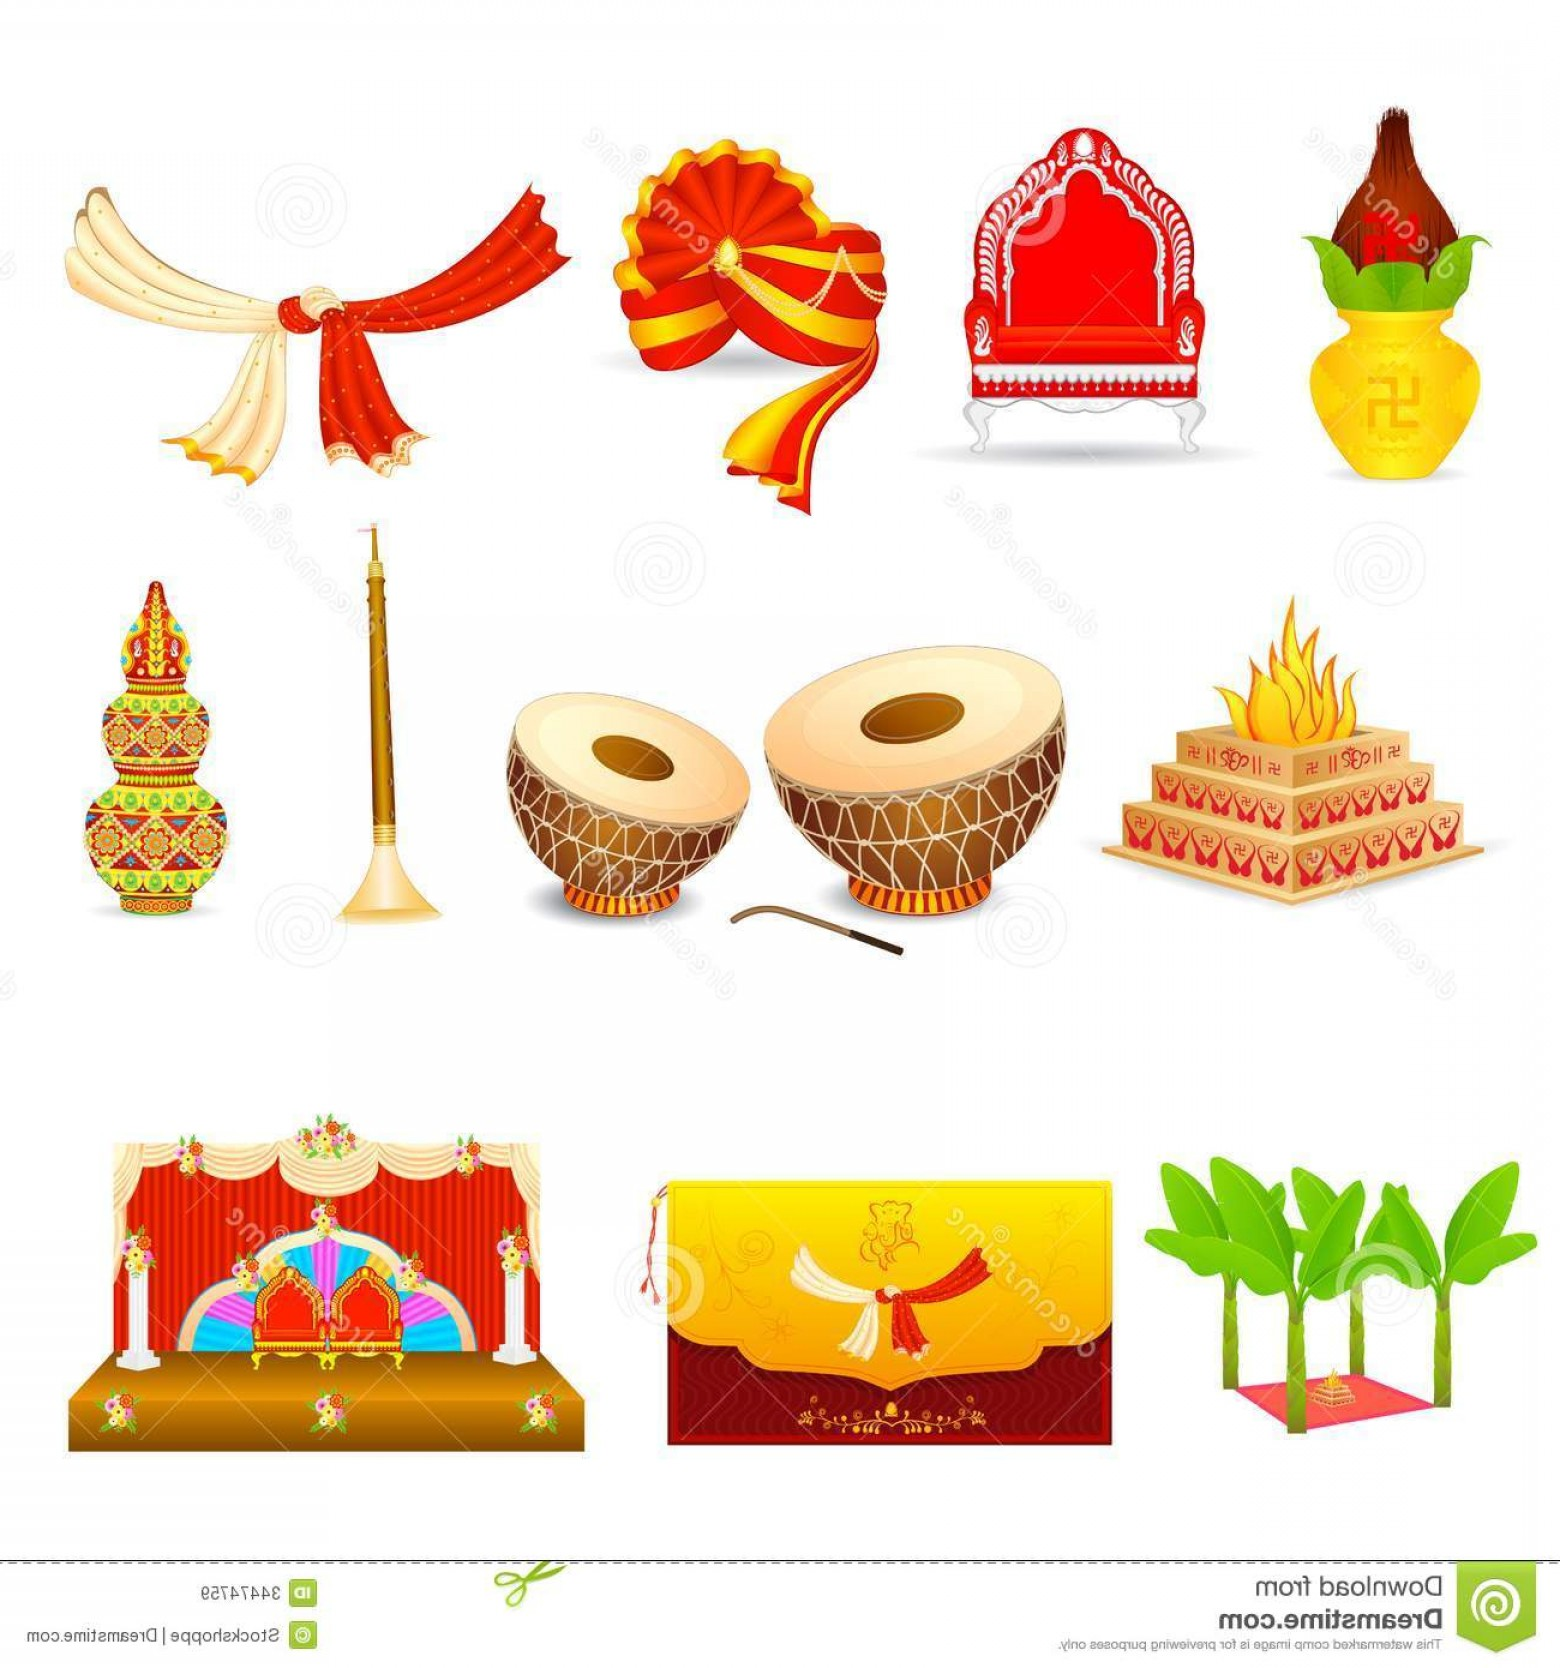 1560x1668 Royalty Free Stock Images Indian Wedding Vector Illustration